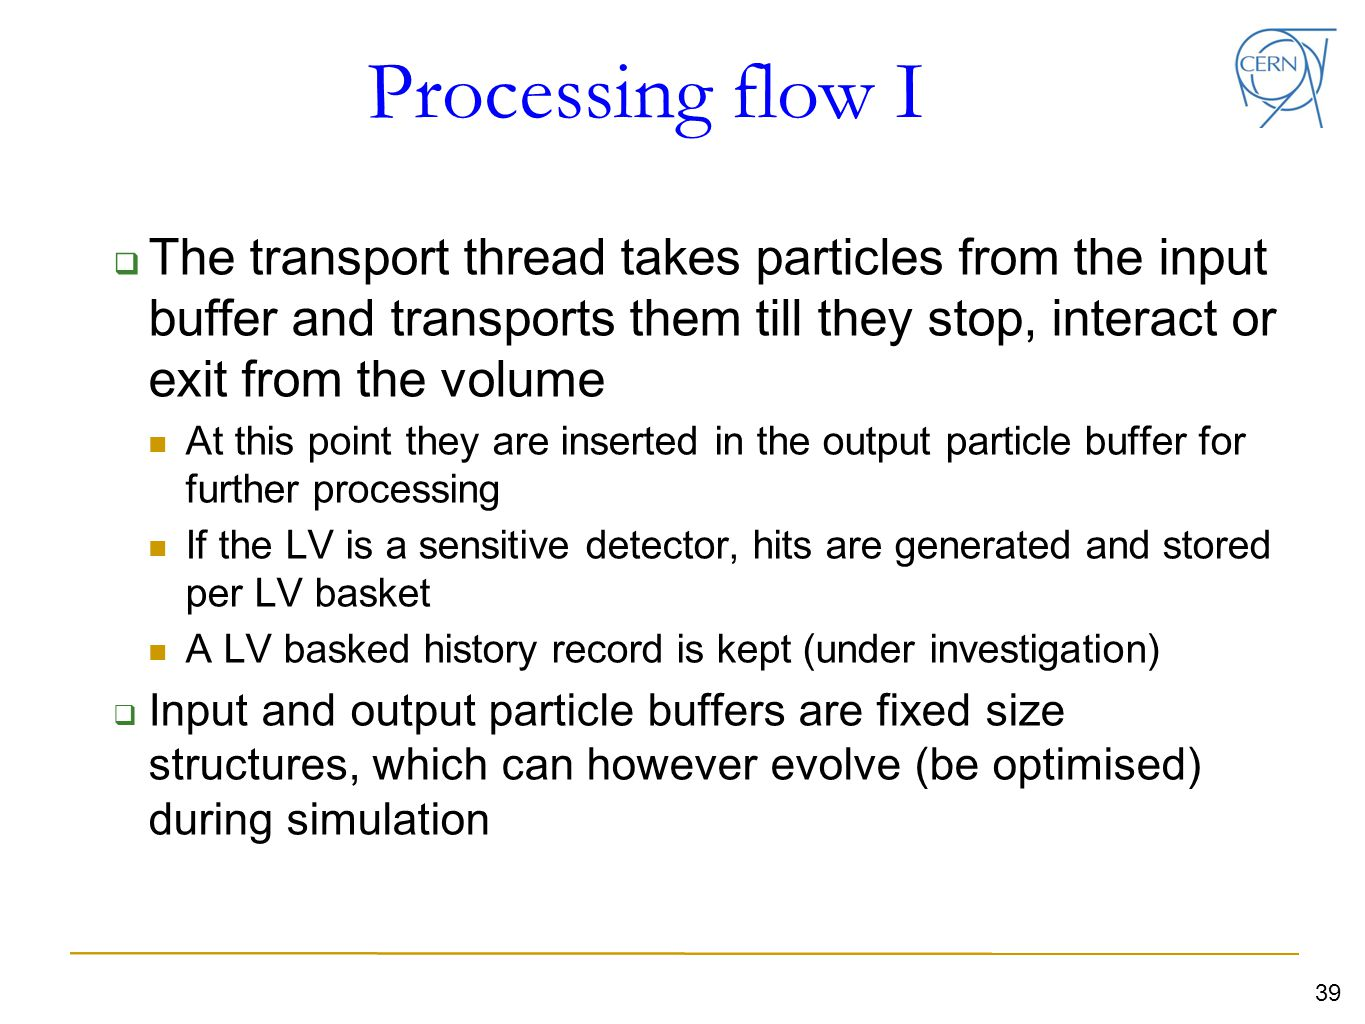 Processing flow I  The transport thread takes particles from the input buffer and transports them till they stop, interact or exit from the volume At this point they are inserted in the output particle buffer for further processing If the LV is a sensitive detector, hits are generated and stored per LV basket A LV basked history record is kept (under investigation)  Input and output particle buffers are fixed size structures, which can however evolve (be optimised) during simulation 39